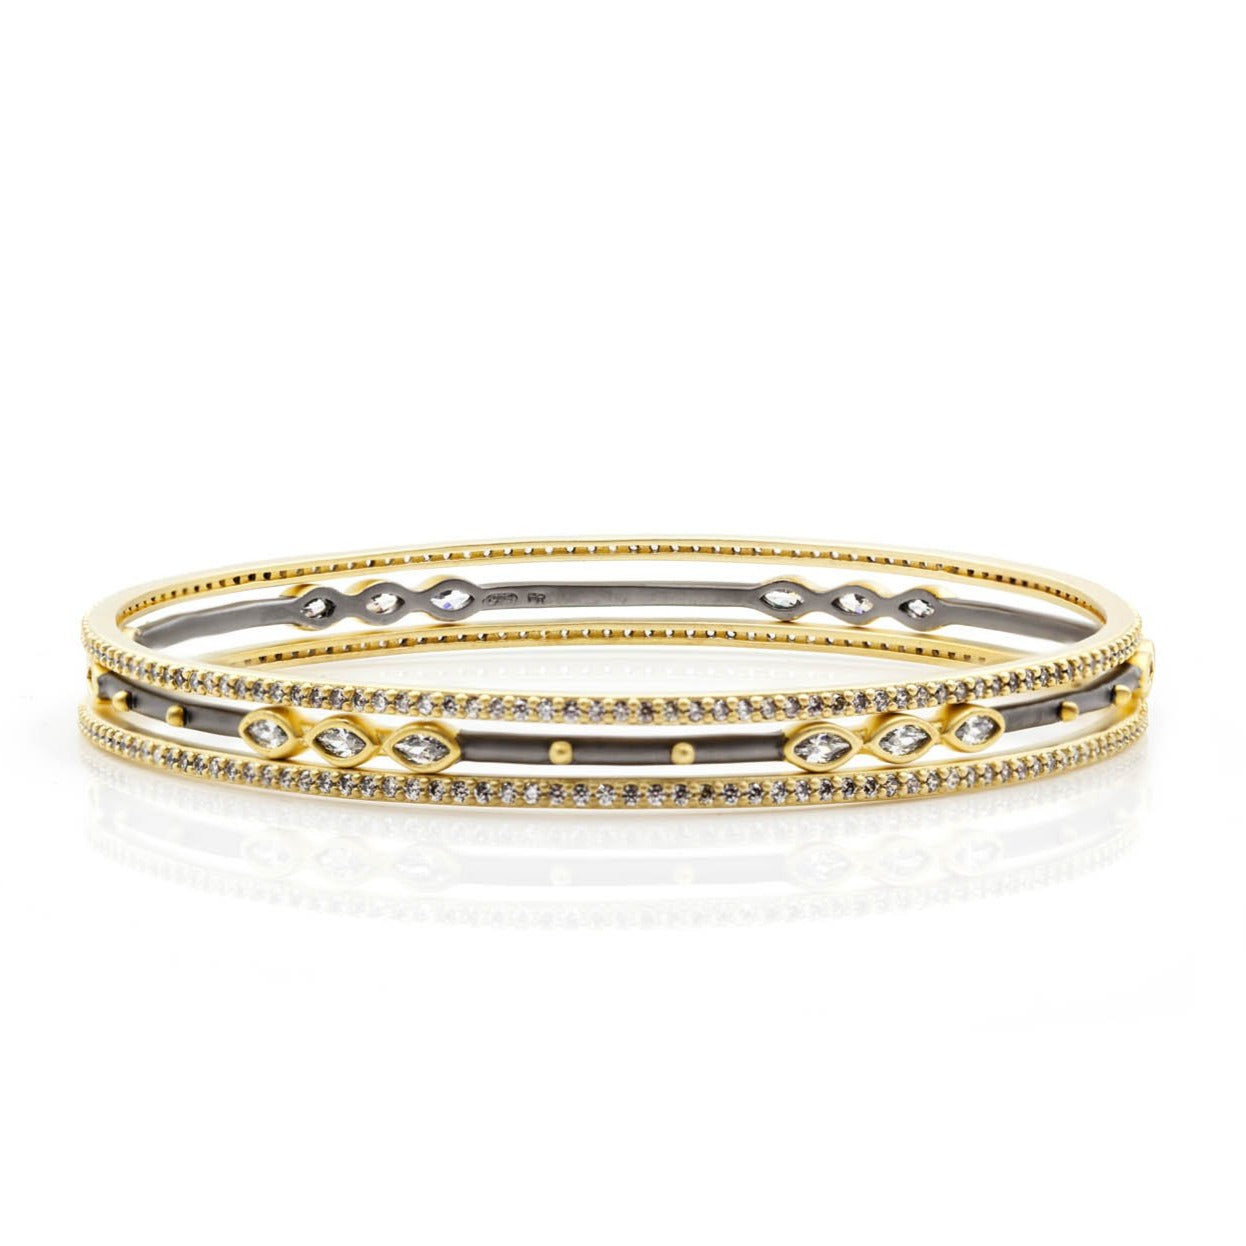 "Freida Rothman Signature Marquise Station 3-Stack Bangles in yellow gold and black gold on sterling silver. This is an easy stack of bangles that have a stunning amount of sparkle.  14K yellow gold & rhodium matte finish  Sterling silver core  Hand-set cubic zirconia stones  Diameter: 2.5""   Set of 3 slide-on bangles"